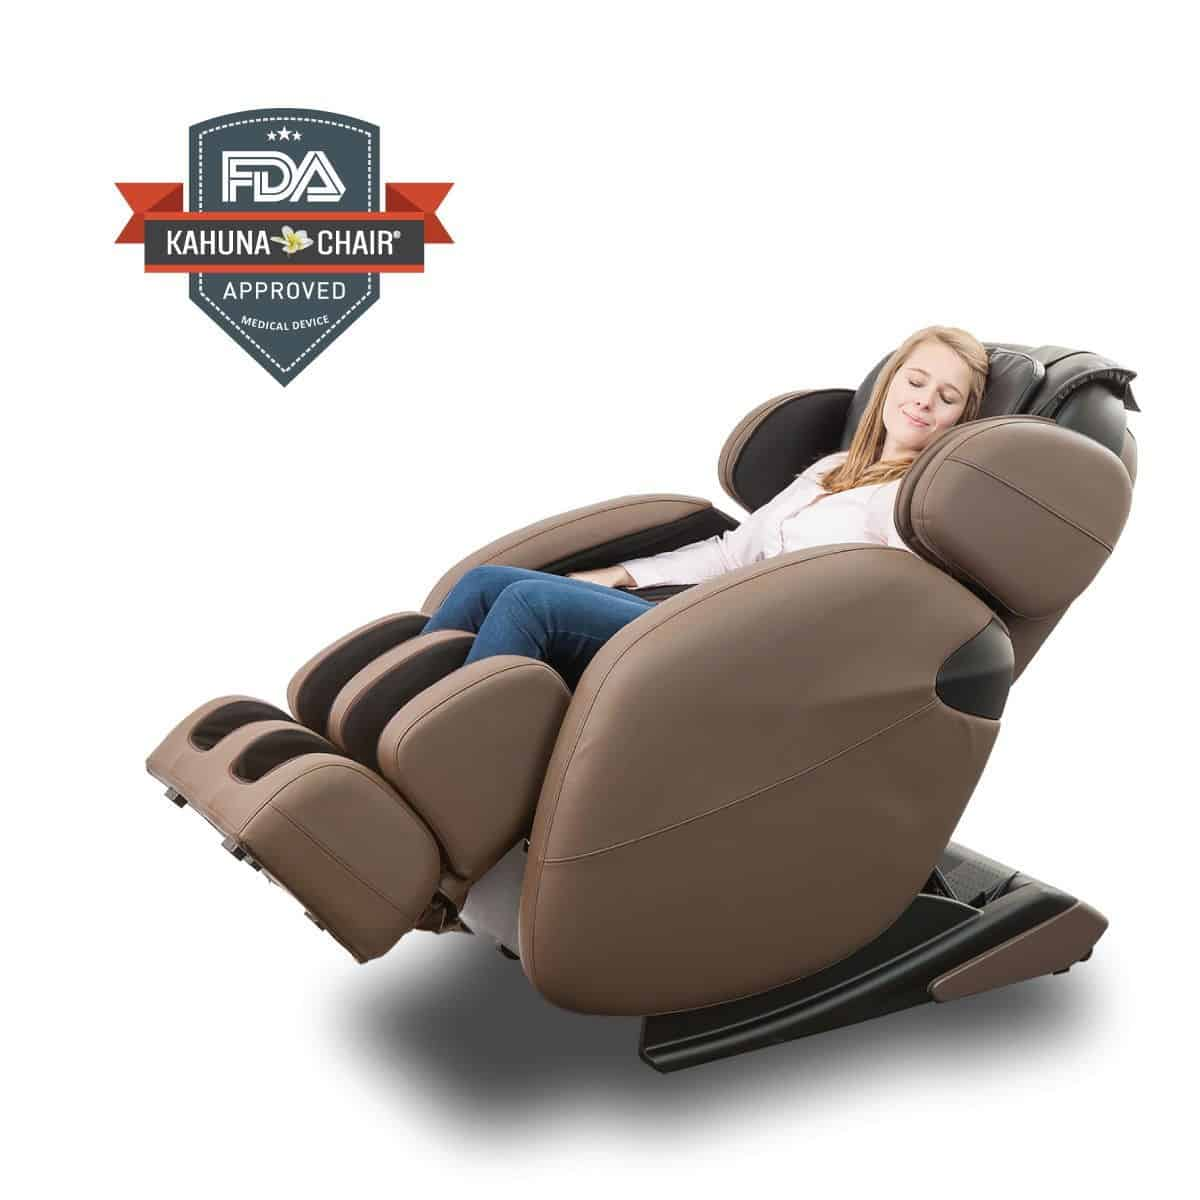 Brown large massage recliner chair with L-track massage system and heating therapy feature.